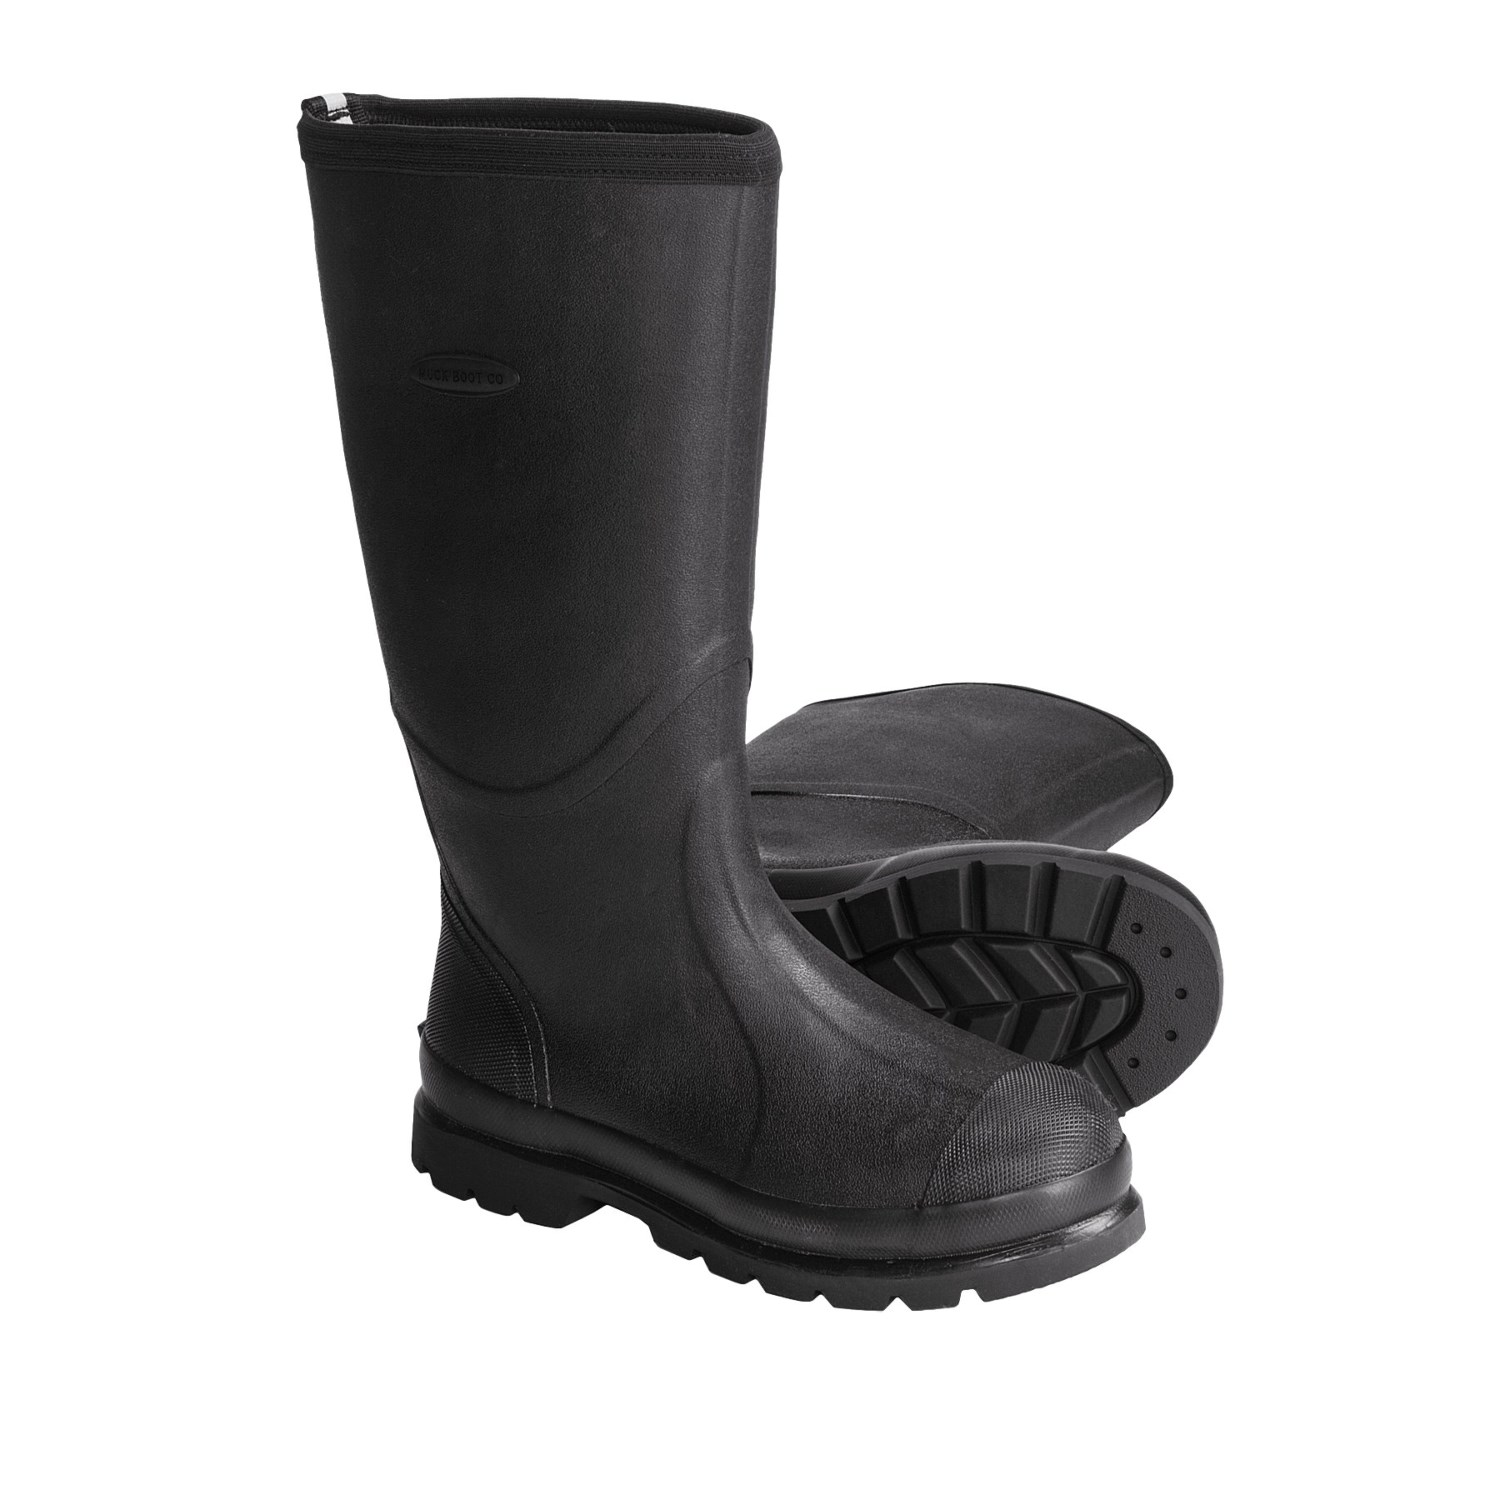 Insulated Rubber Work Boots